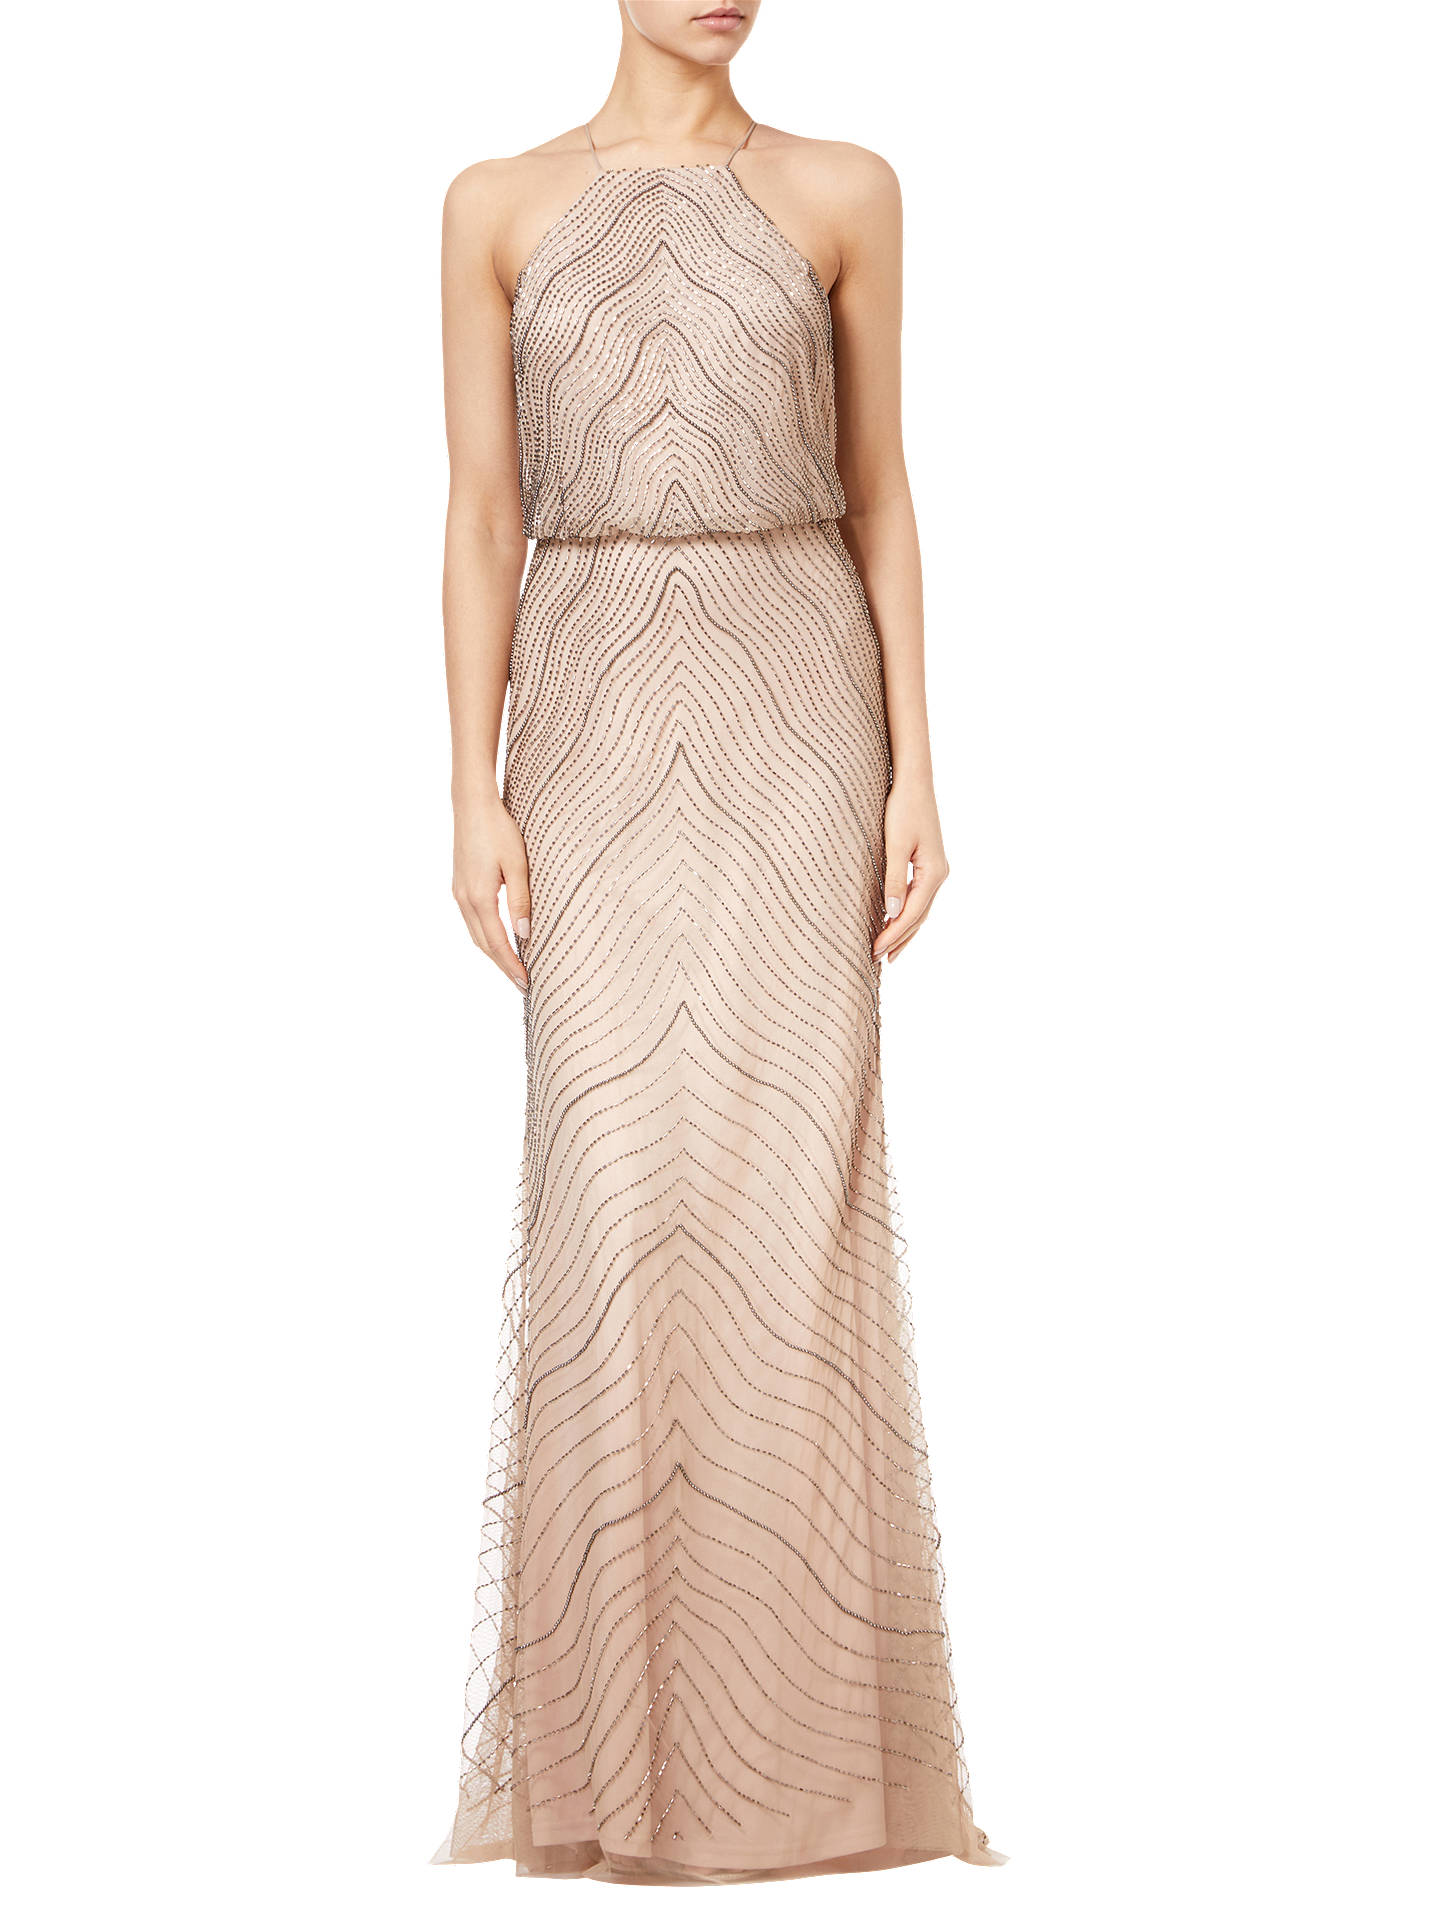 Buy Adrianna Papell Blouson Beaded Halterneck Gown, Blush Pink, 14 Online at johnlewis.com